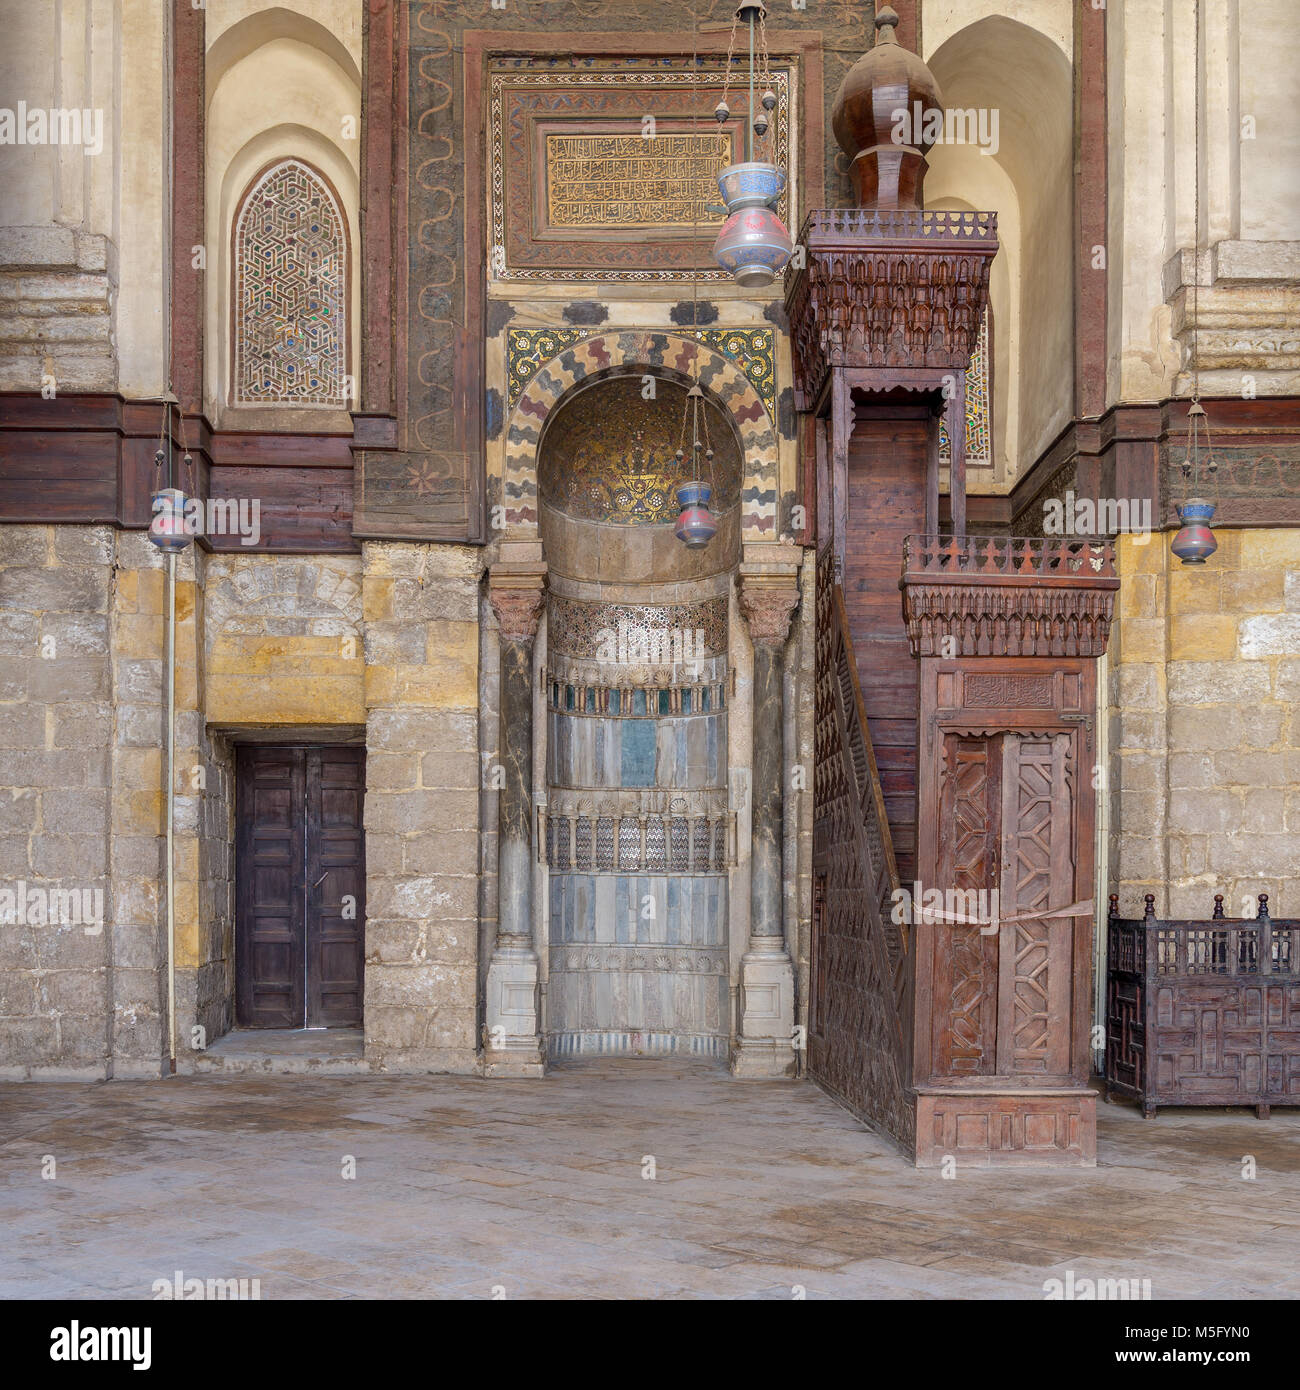 Niche (Mihrab) and pulpit (Minbar) of Mosque of Sultan Qalawun, Moez Street, Cairo, Egypt - Stock Image